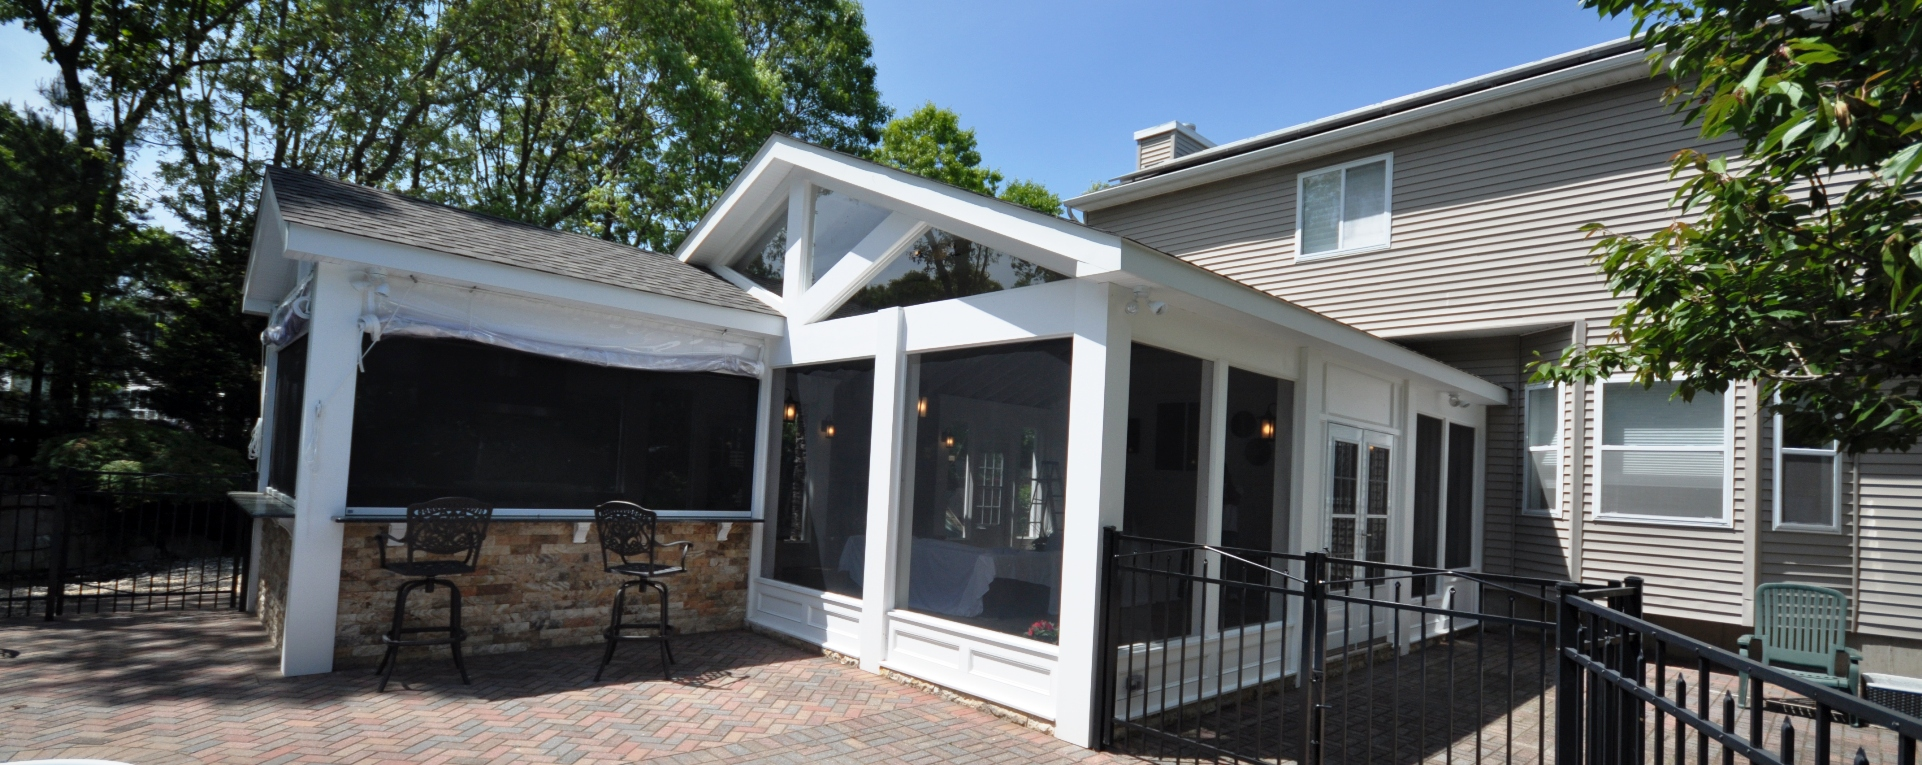 Sunrooms  Design  Additions  Long Island NY  Deck and